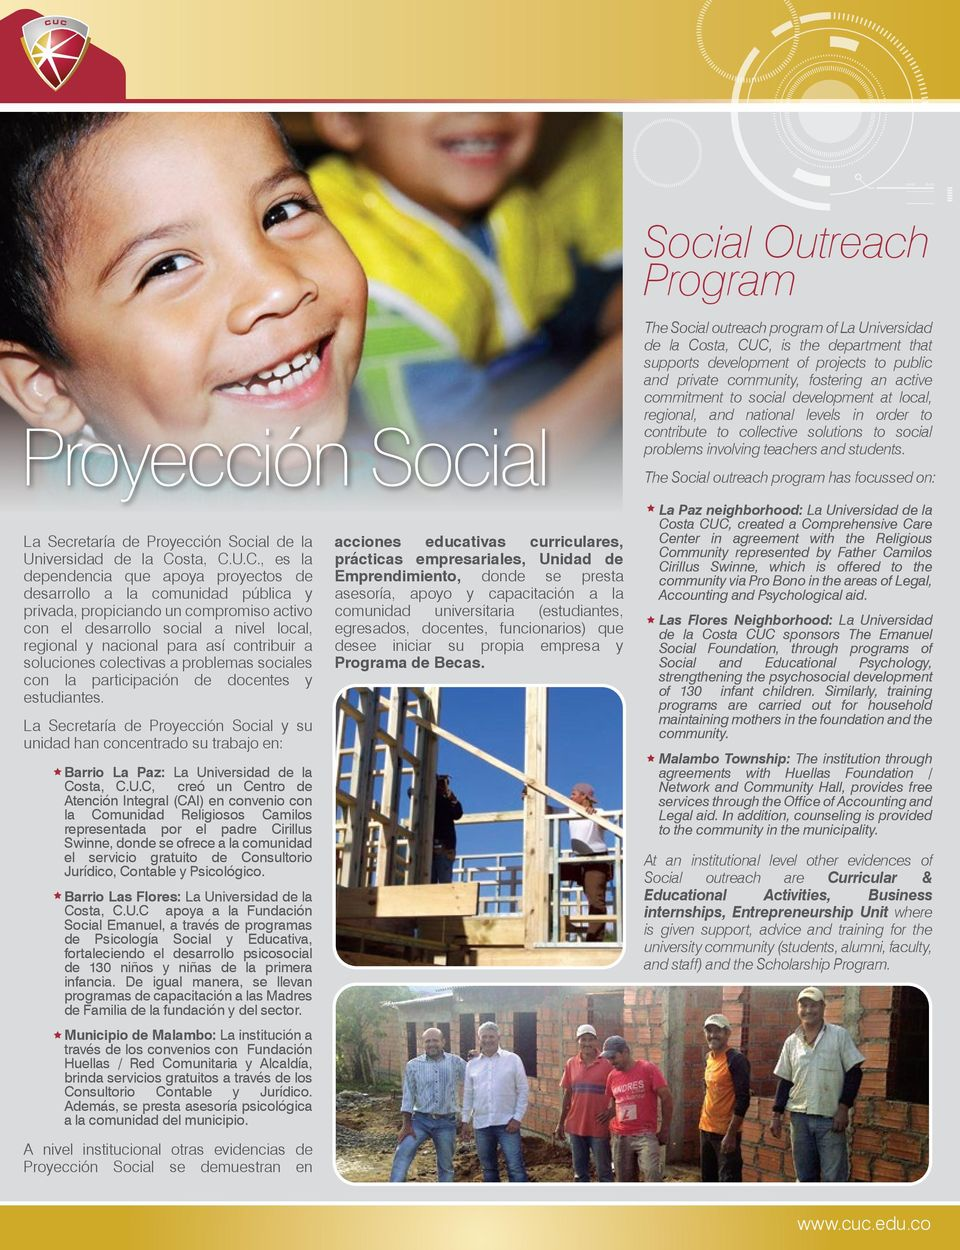 The Social outreach program has focussed on: La Secretaría de Proyección Social de la Universidad de la Co